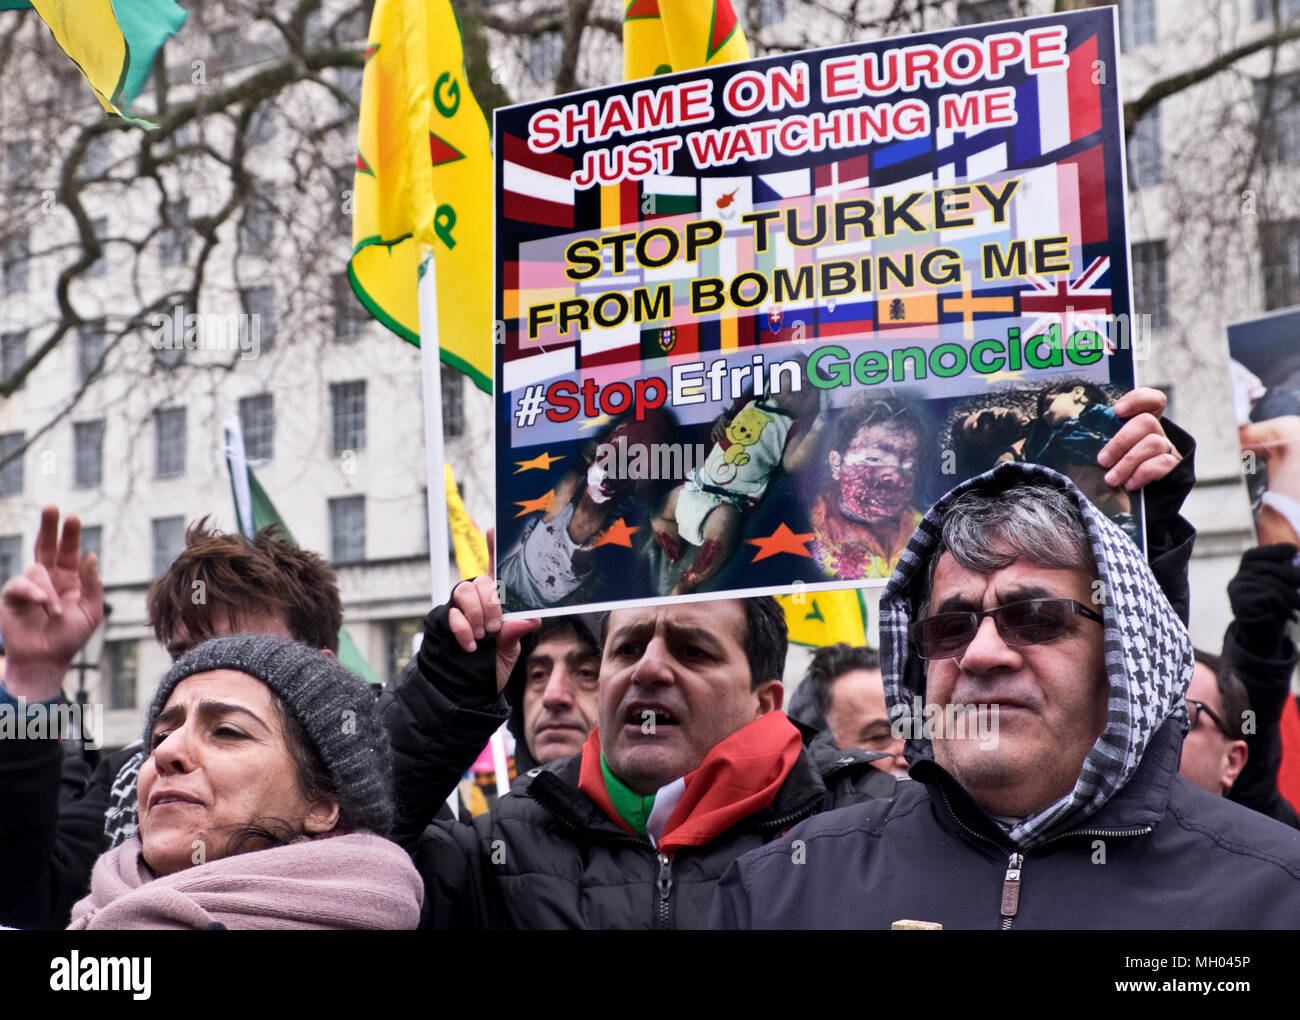 Kurdish men and  women protesting genocide in Afrin in Syria on Stand up against Racism, International demonstration in London to mark UN anti-racism day. March 17 2018 - Stock Image